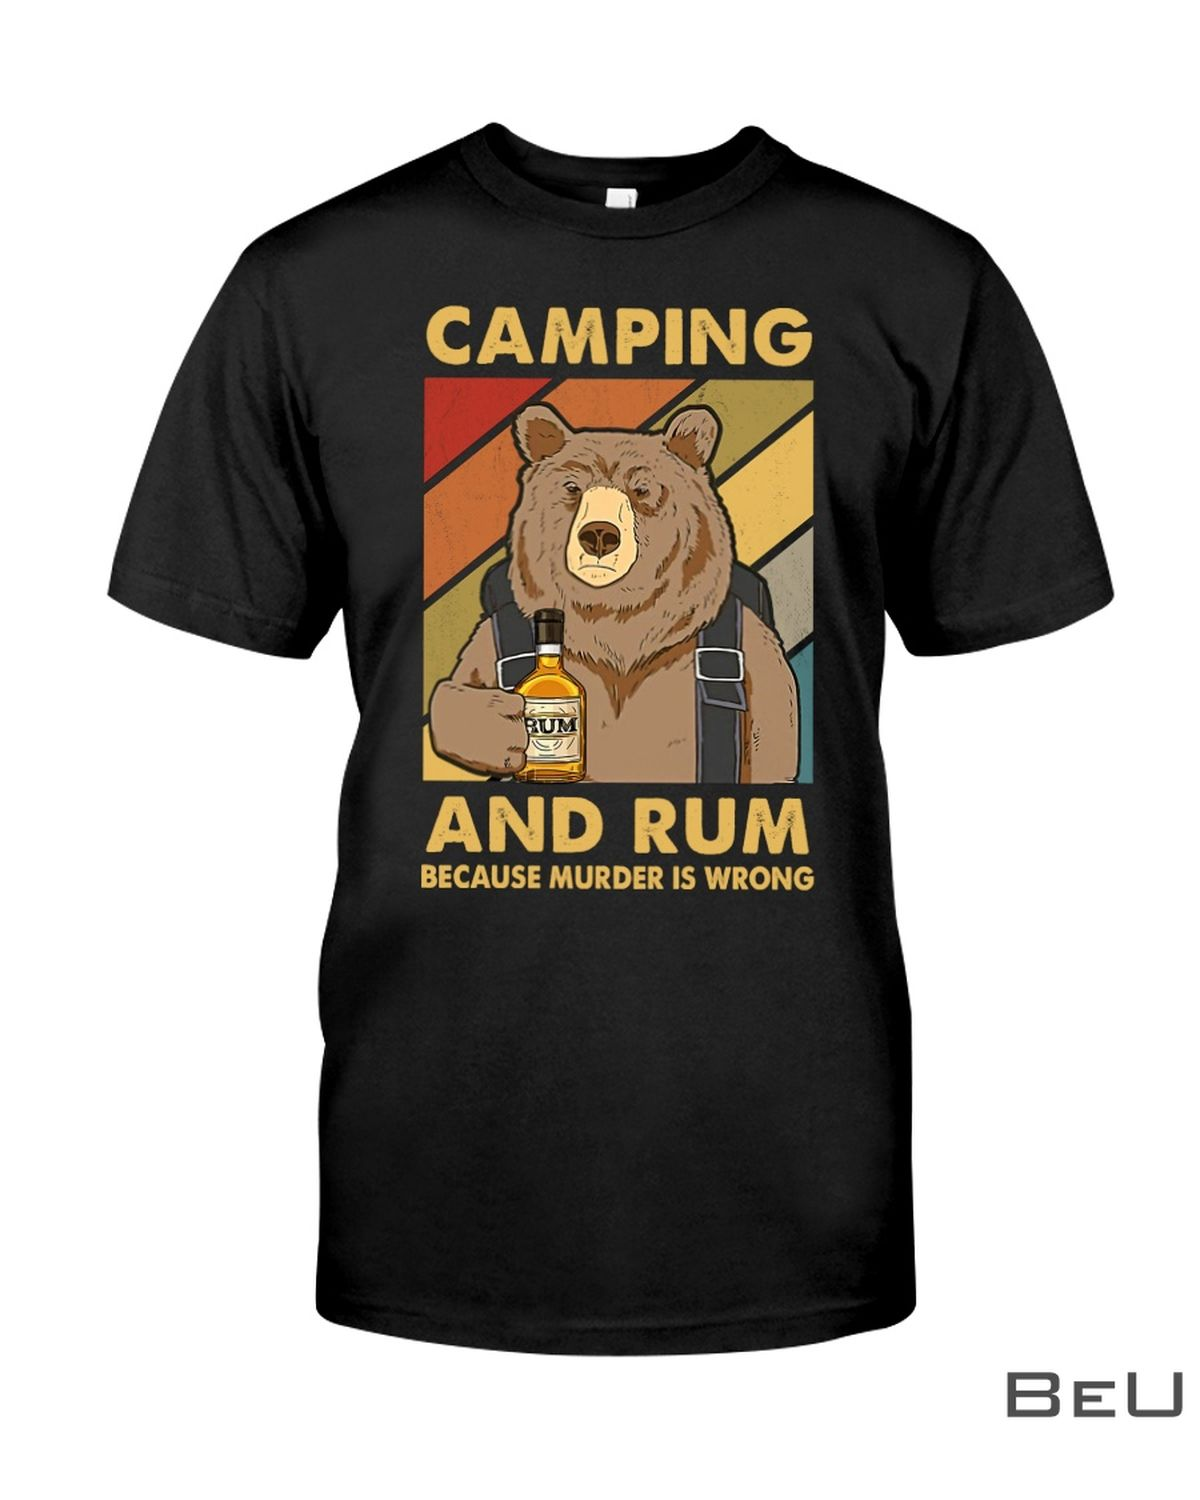 Camping And Rum Because Murder Is Wrong Shirt, hoodie, tank top